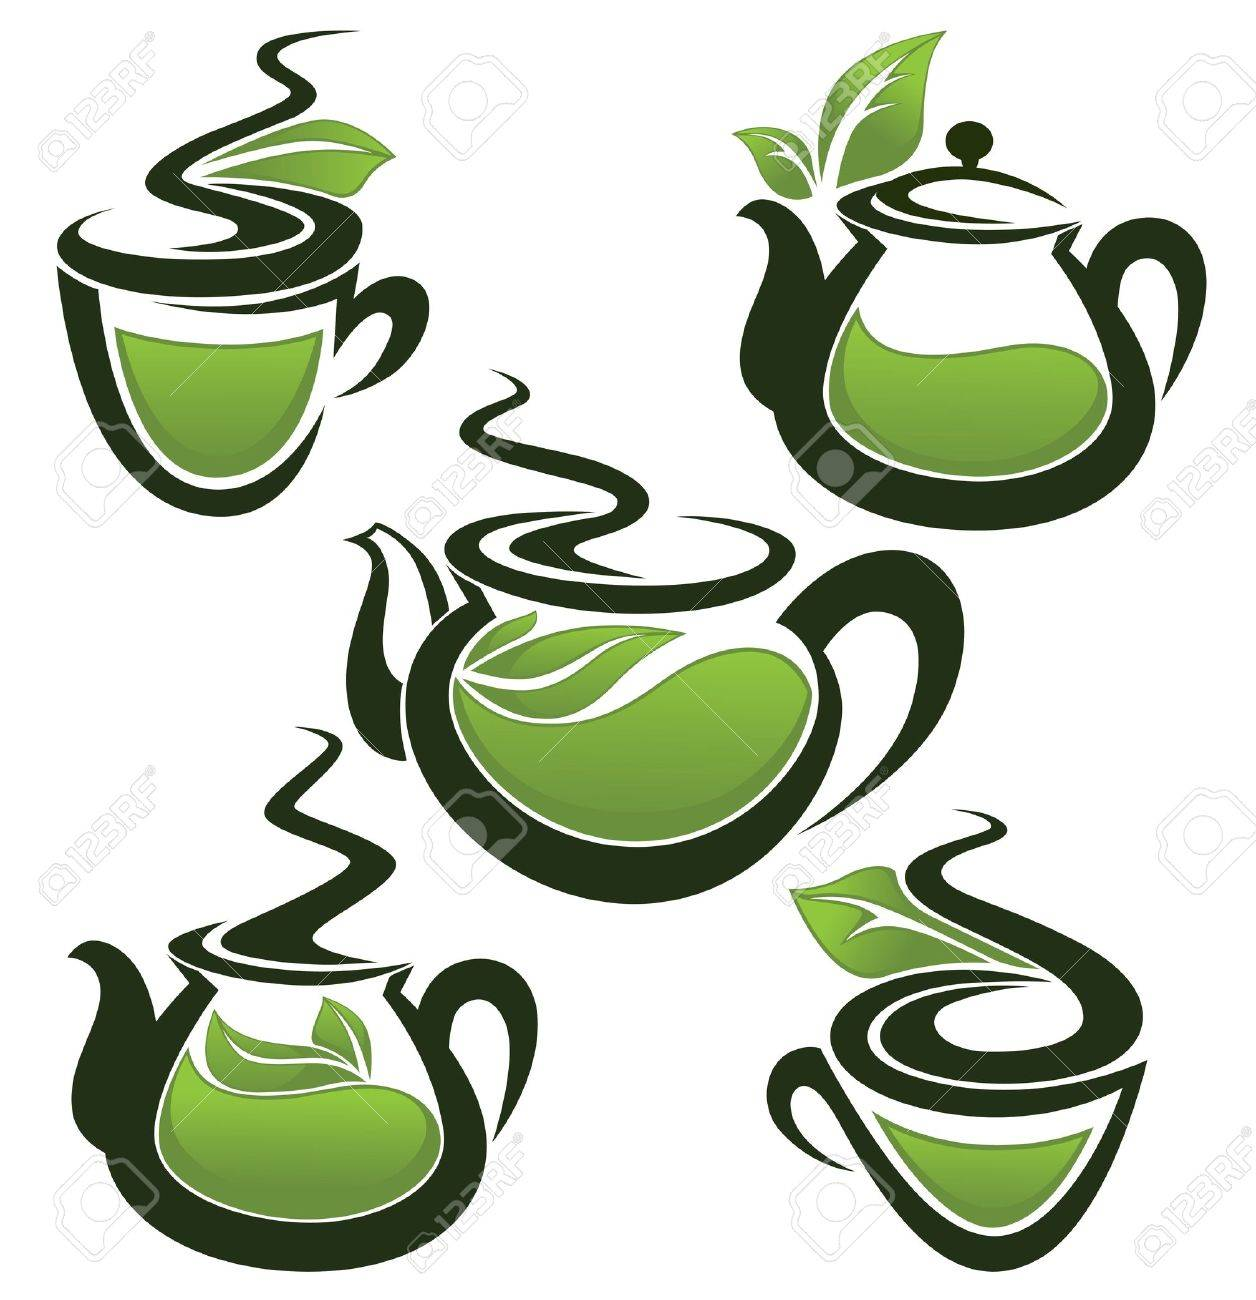 green tea, vector collection of forms, symbols and images Stock Vector - 16954291